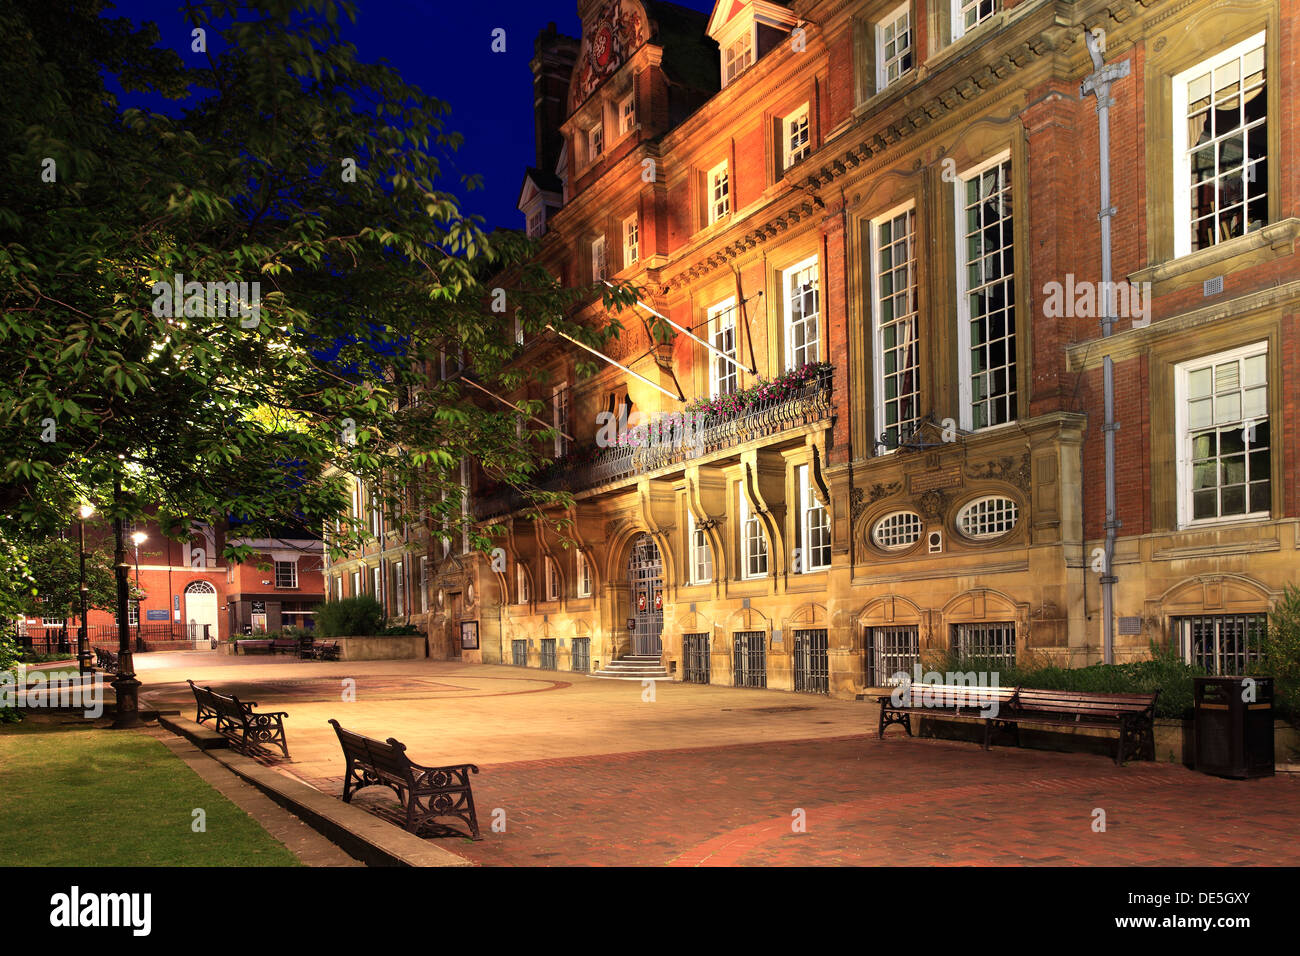 The Town hall building at night, Town Hall square gardens, Leicester ...